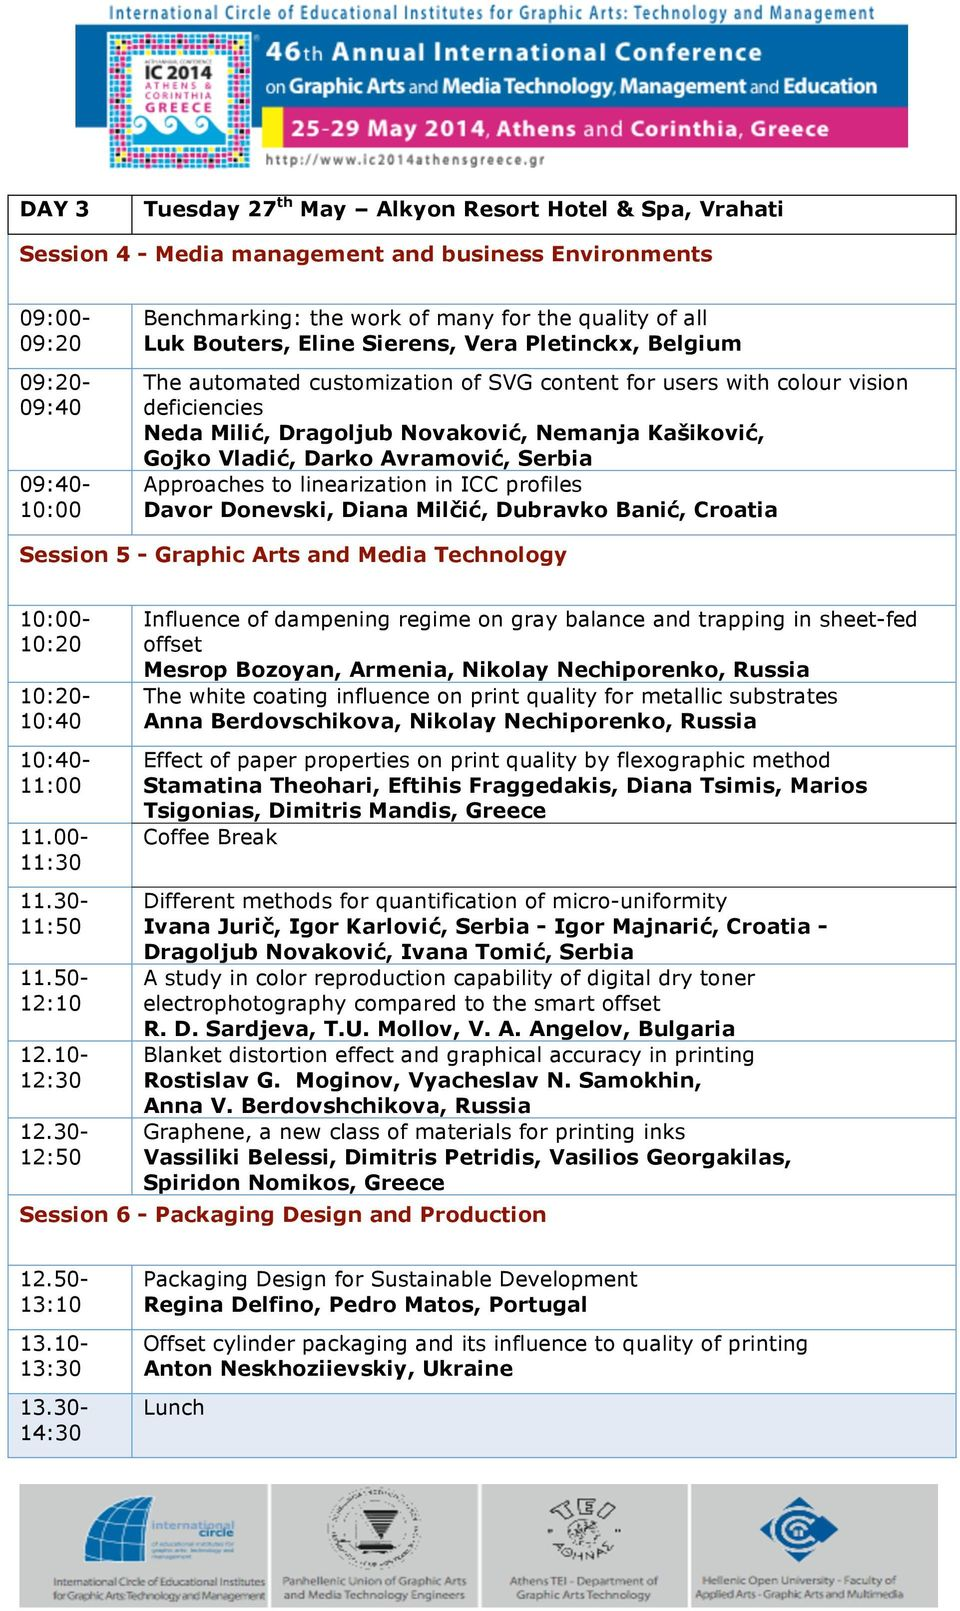 Vladić, Darko Avramović, Serbia Approaches to linearization in ICC profiles Davor Donevski, Diana Milčić, Dubravko Banić, Croatia Session 5 - Graphic Arts and Media Technology 10:00-10:20 10:20-10:40